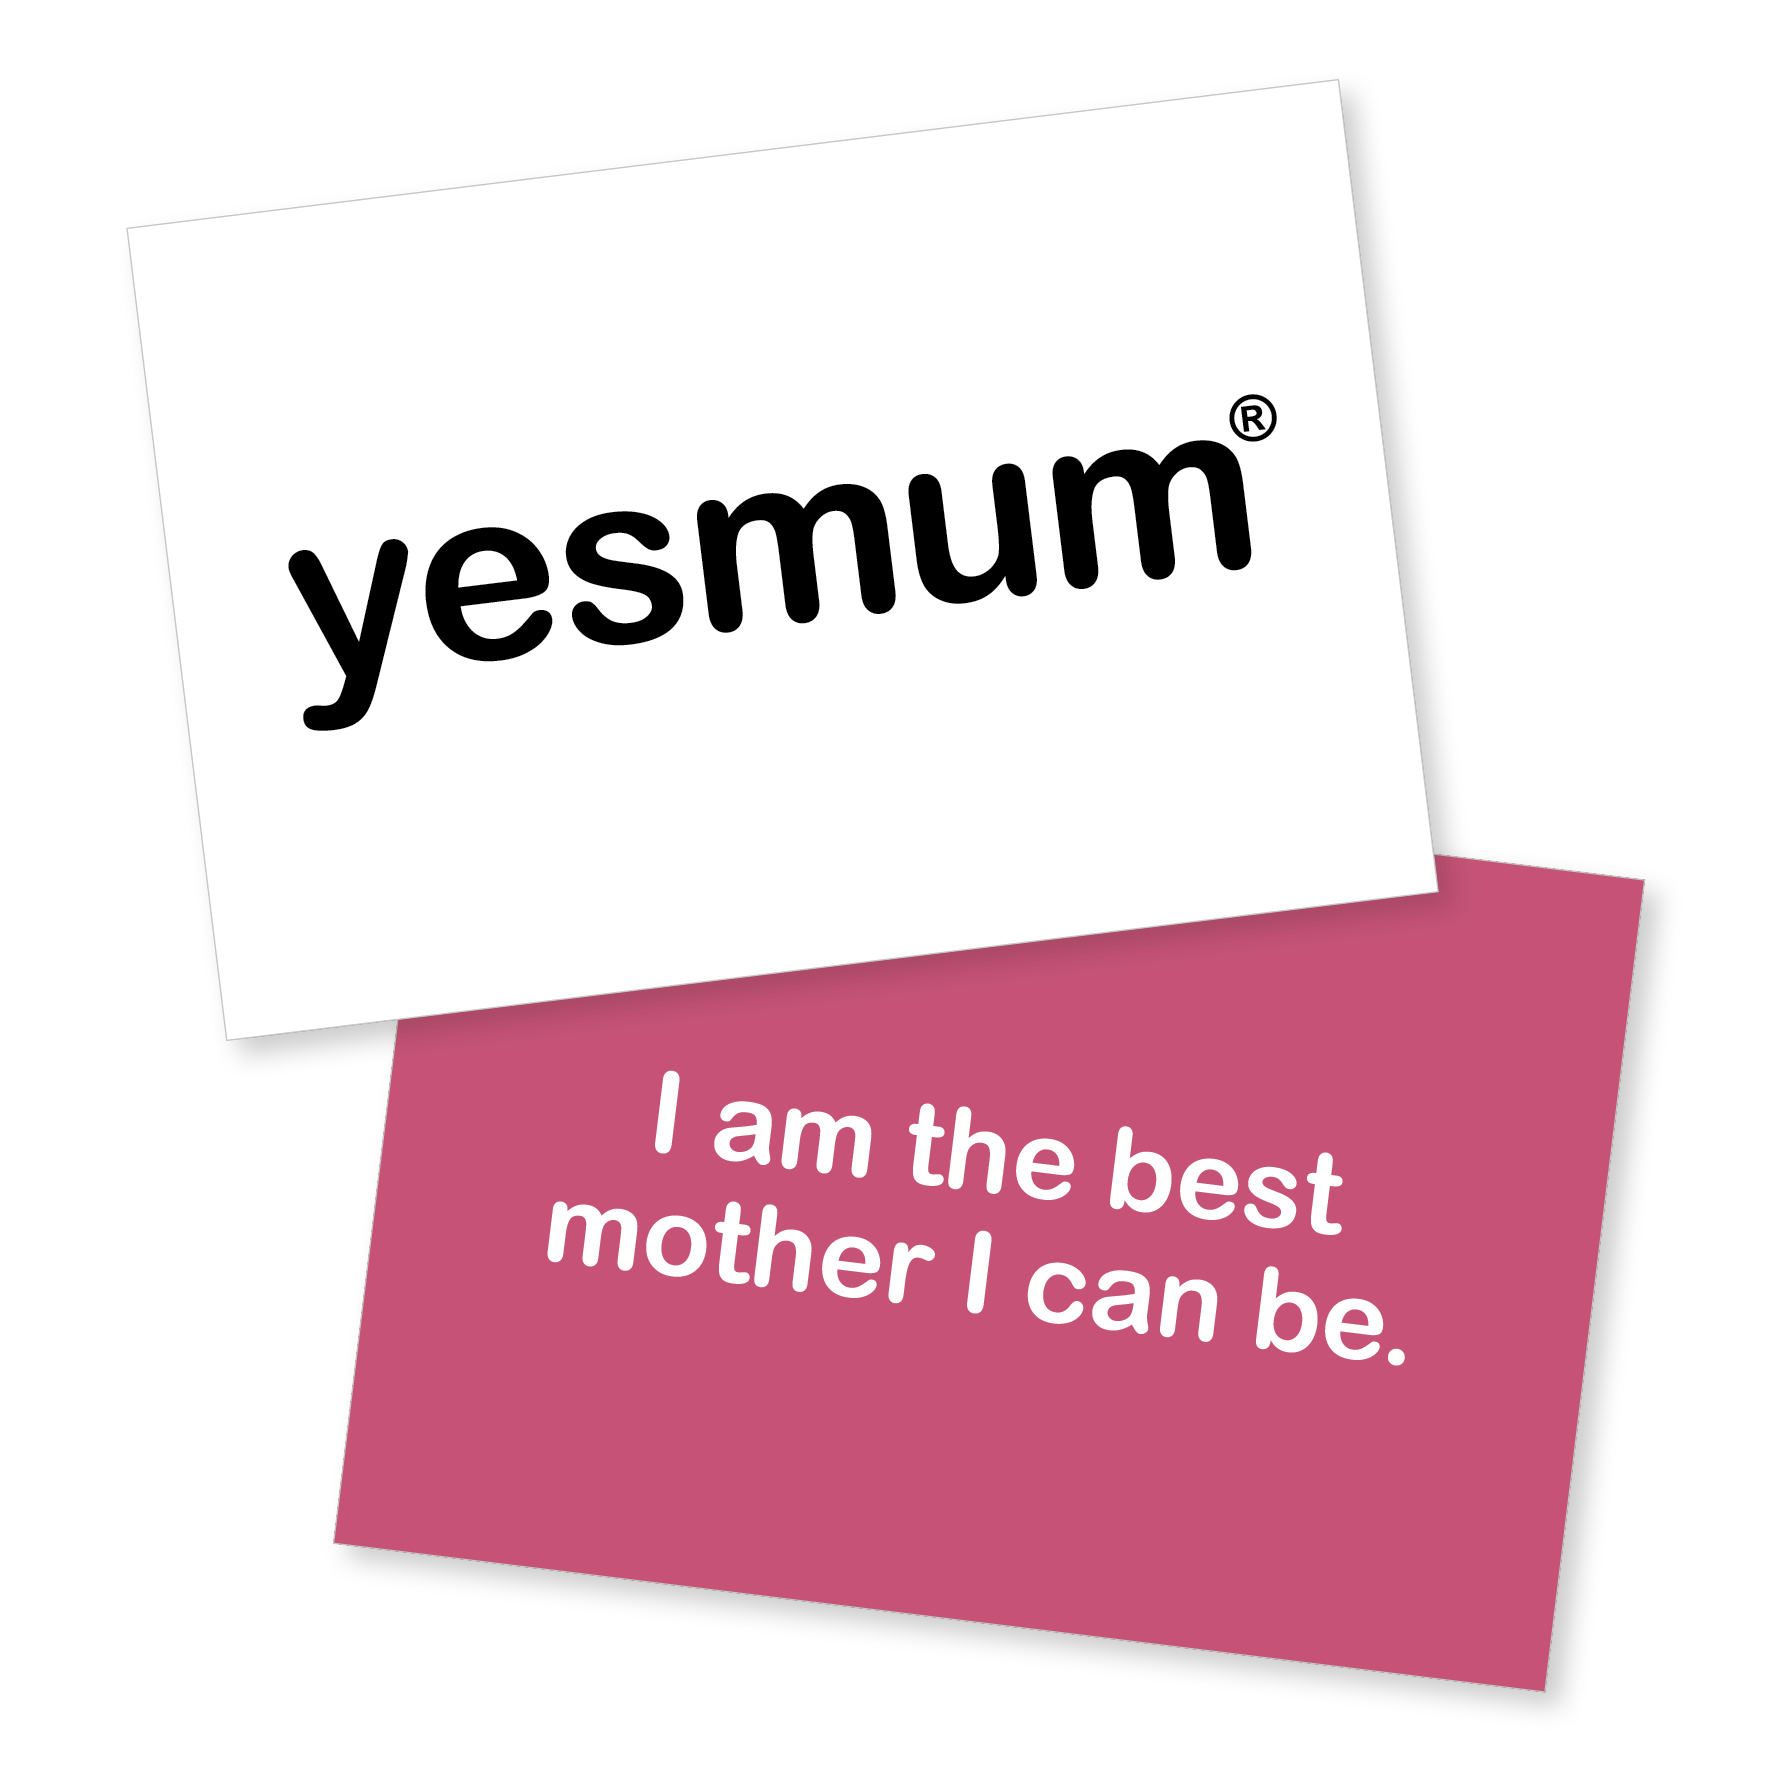 Yes Mum Cards Original for Motherhood